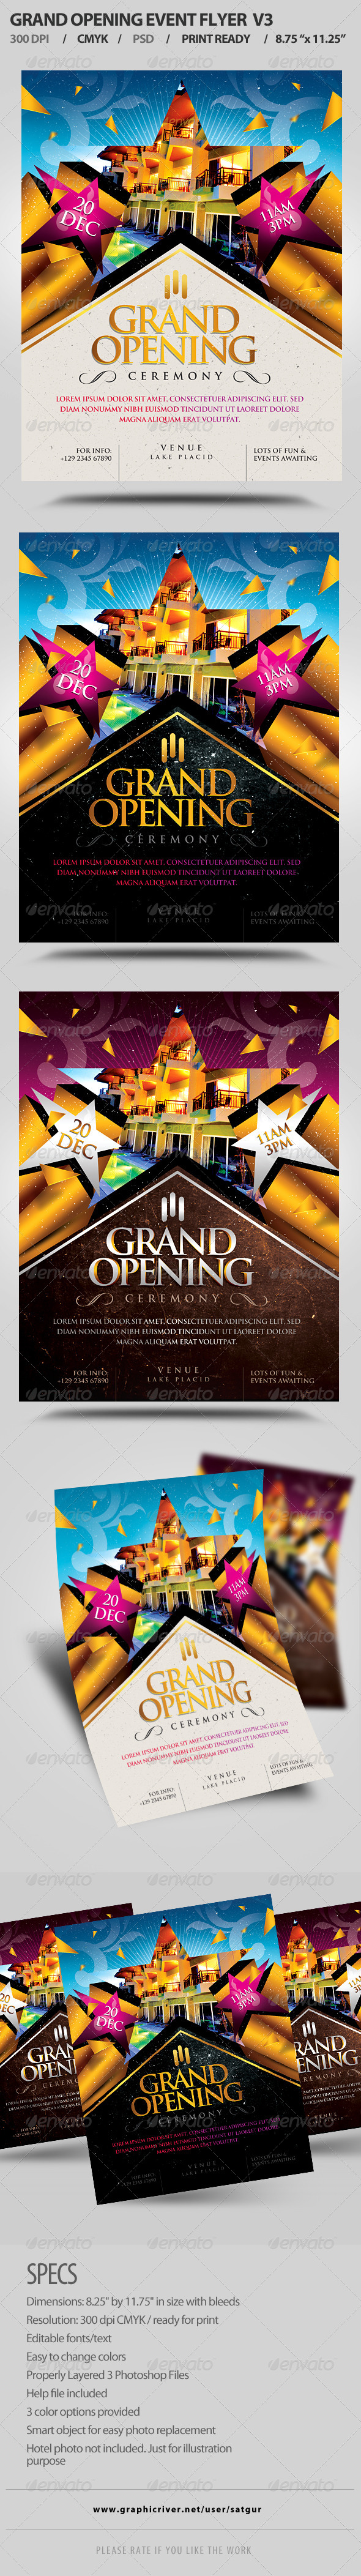 GraphicRiver Grand Opening Event Flyer V3 8042854